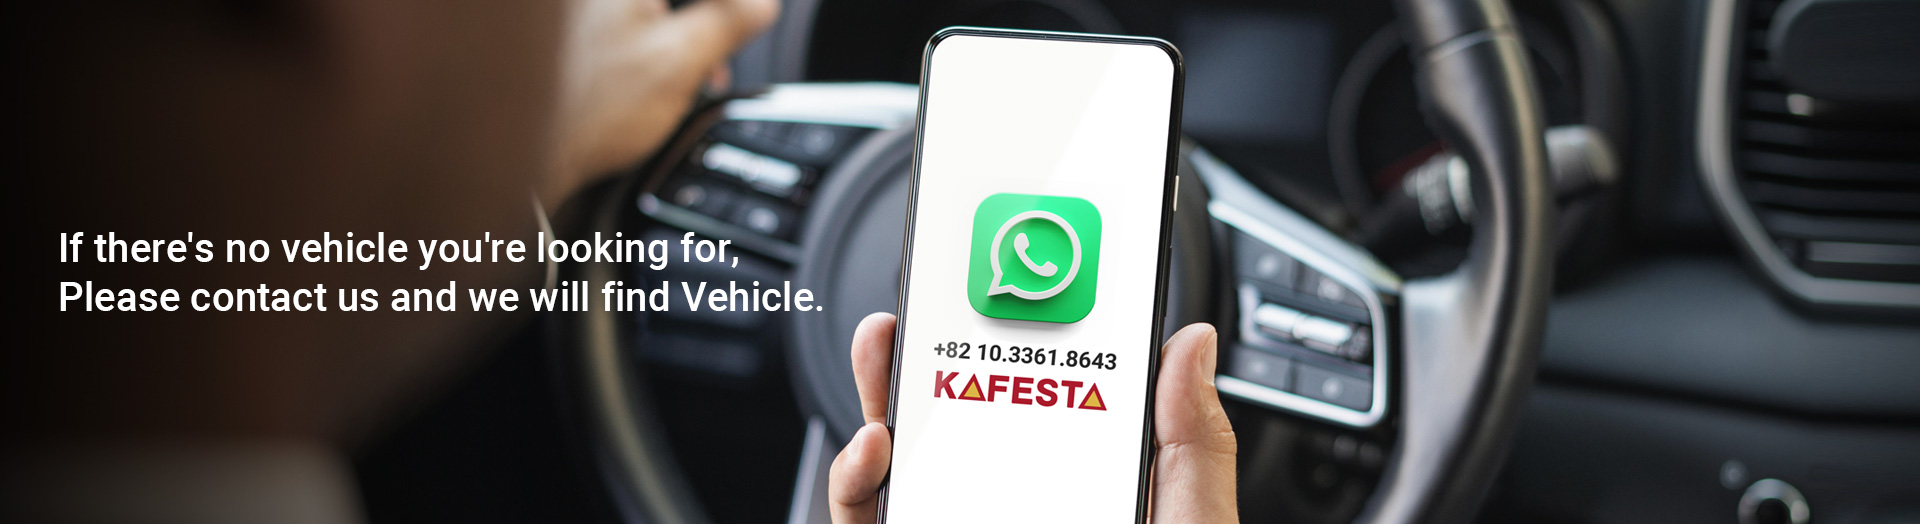 https://www.kafesta.com/Please contact us and we will find Vehicle.